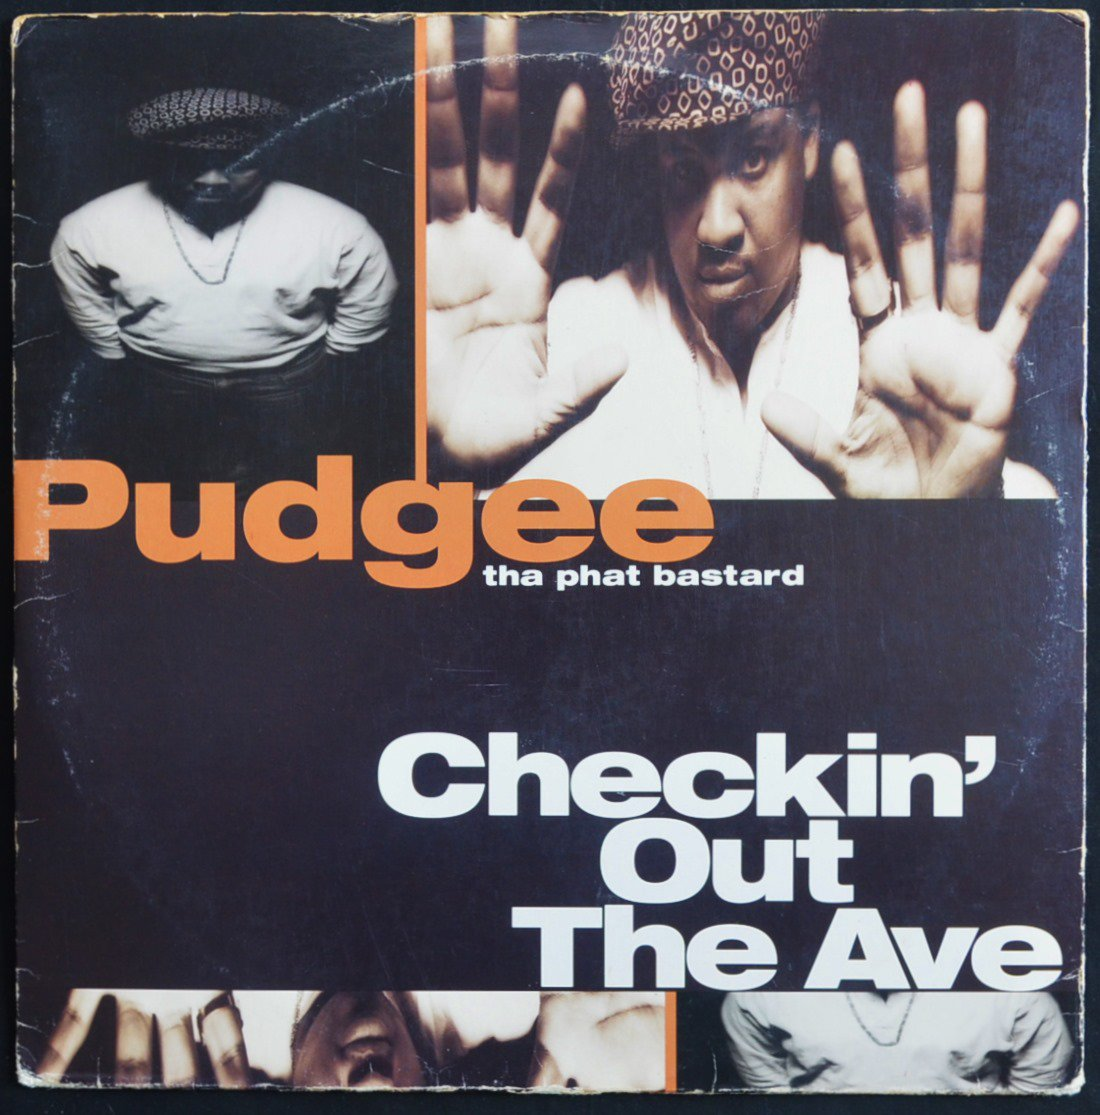 PUDGEE THA PHAT BASTARD / CHECKIN' OUT THE AVE. (12